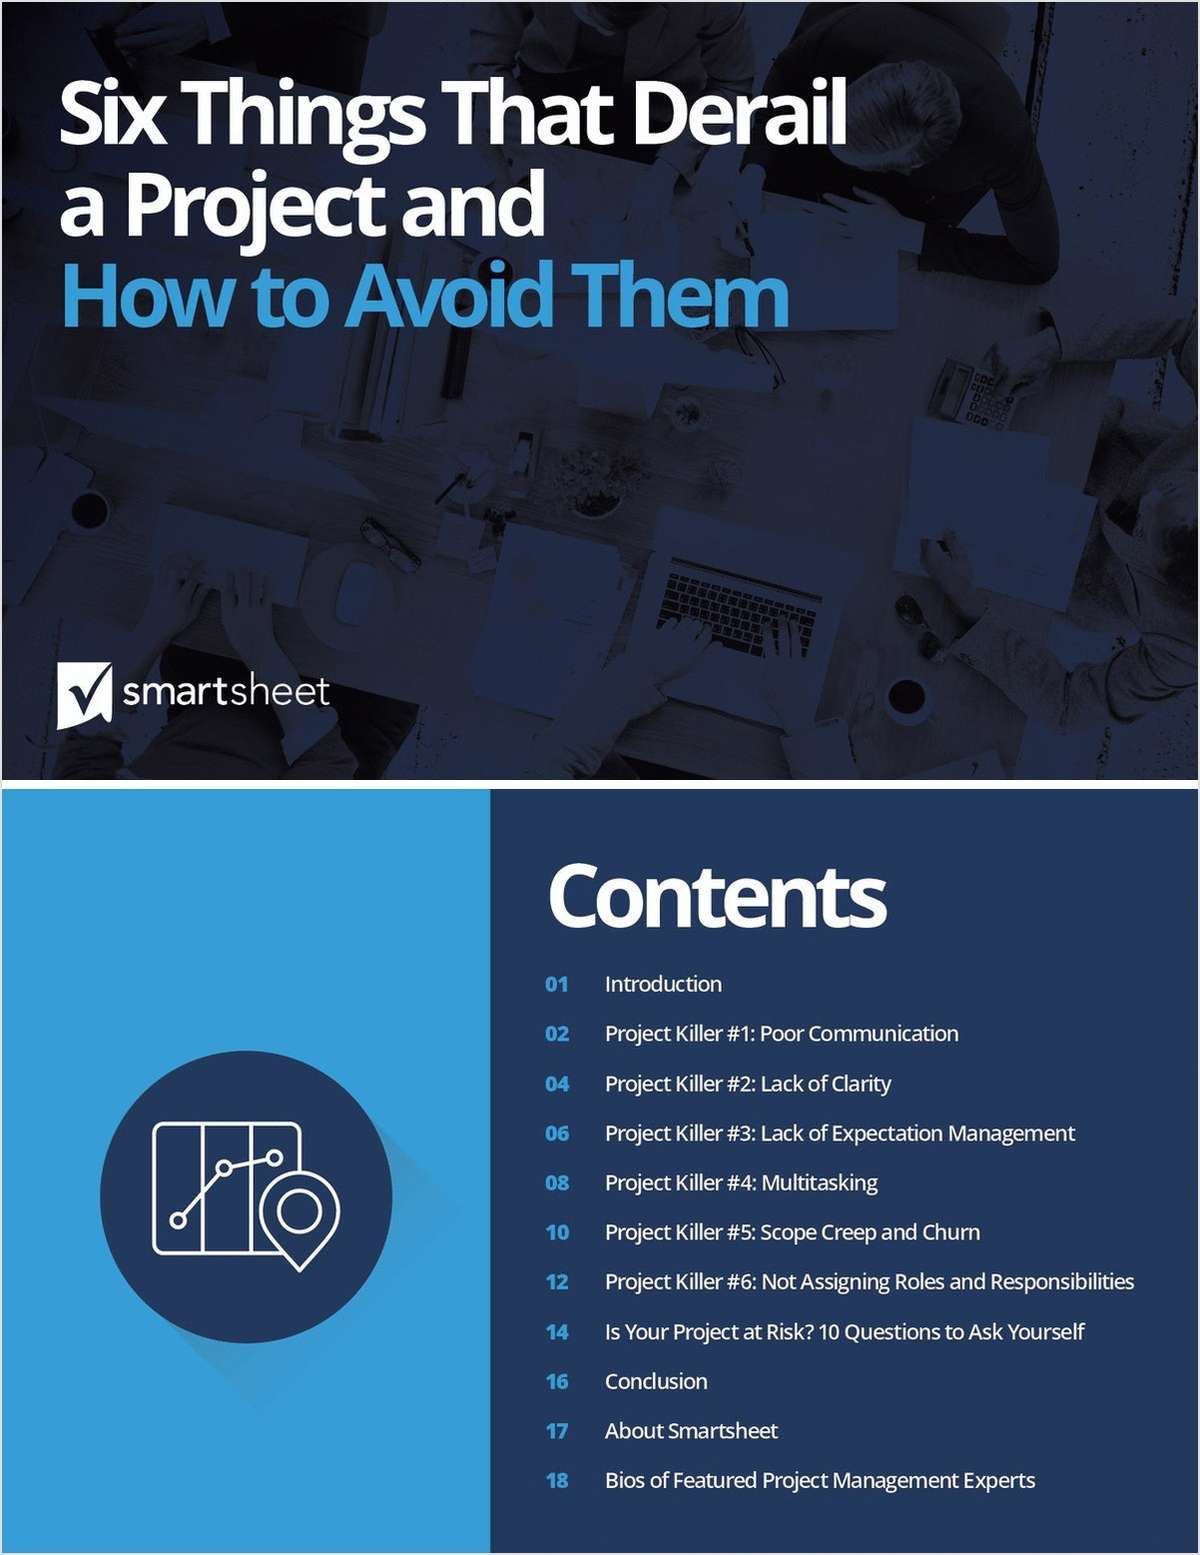 Six Things That Derail a Project and How to Avoid Them